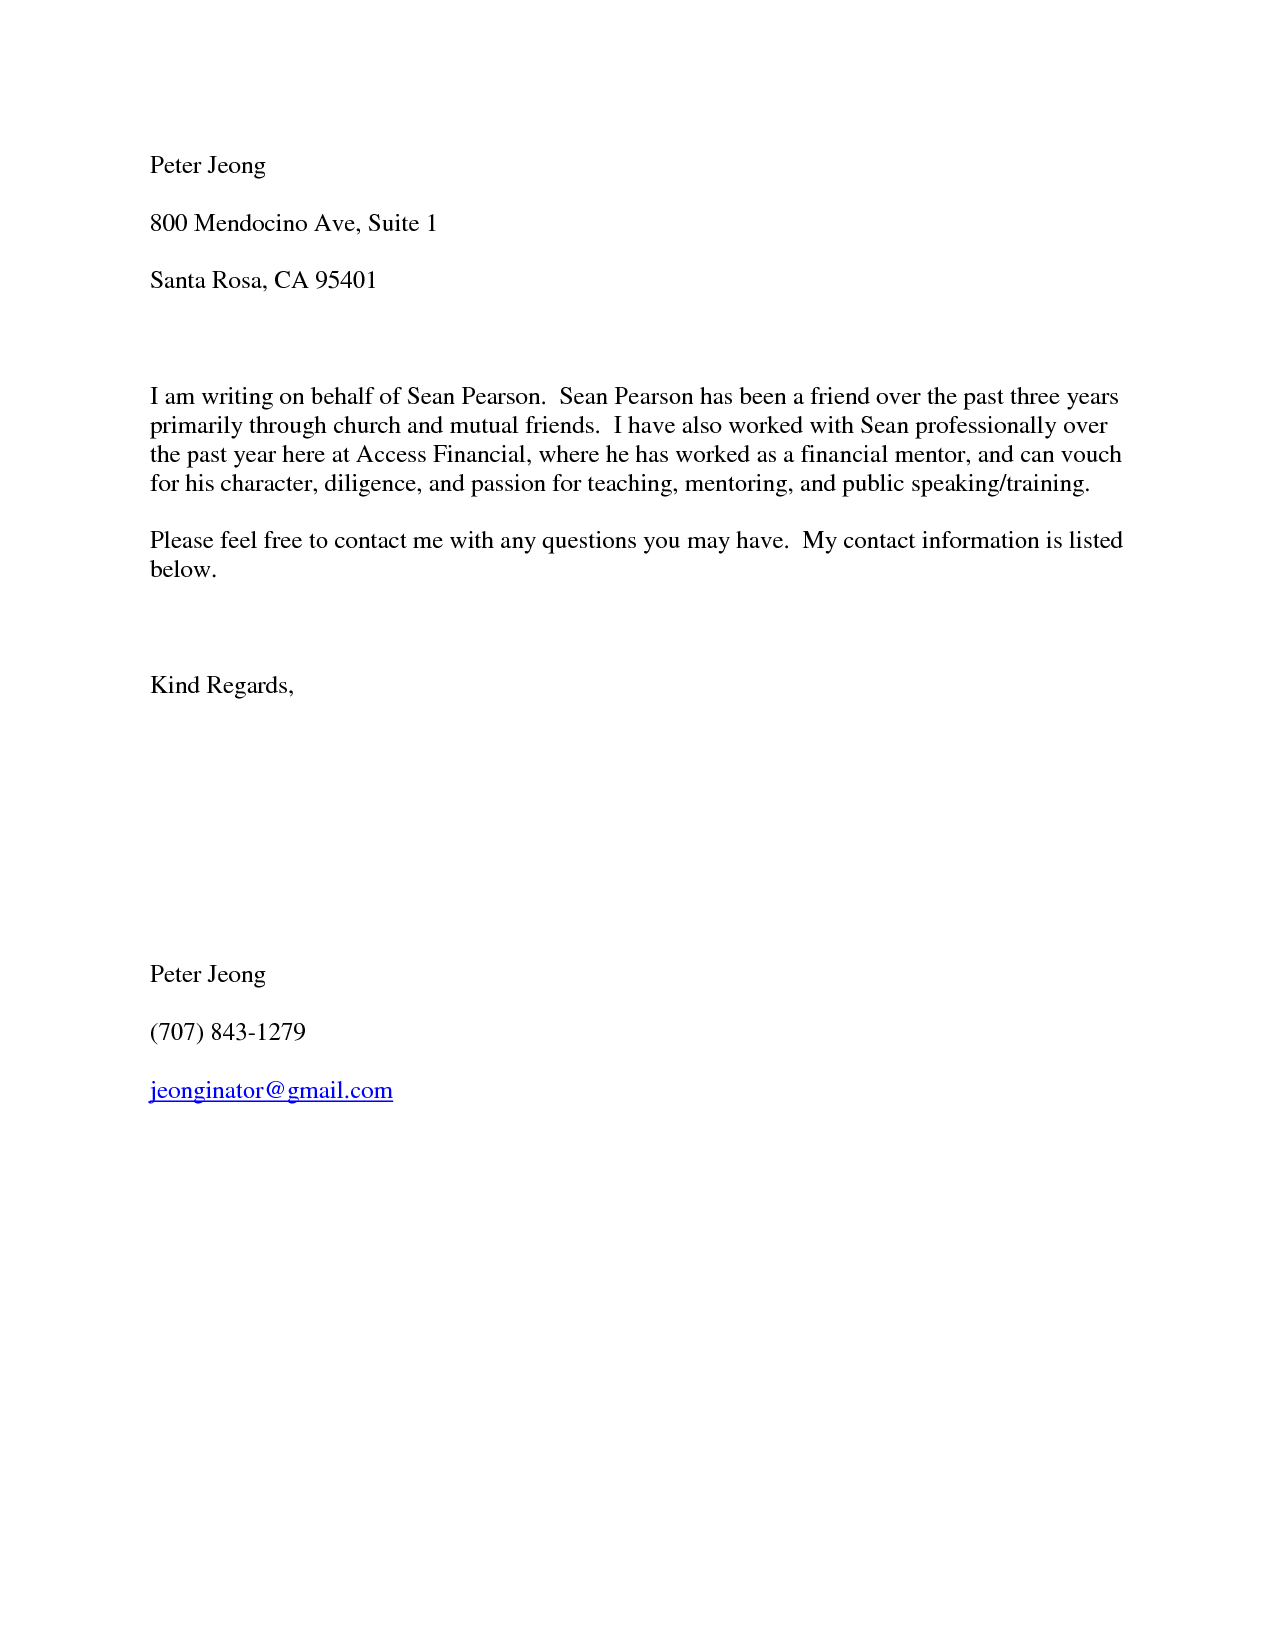 Reference Letter for Friend Character Template - Short Character Reference Letter Choice Image Letter format formal